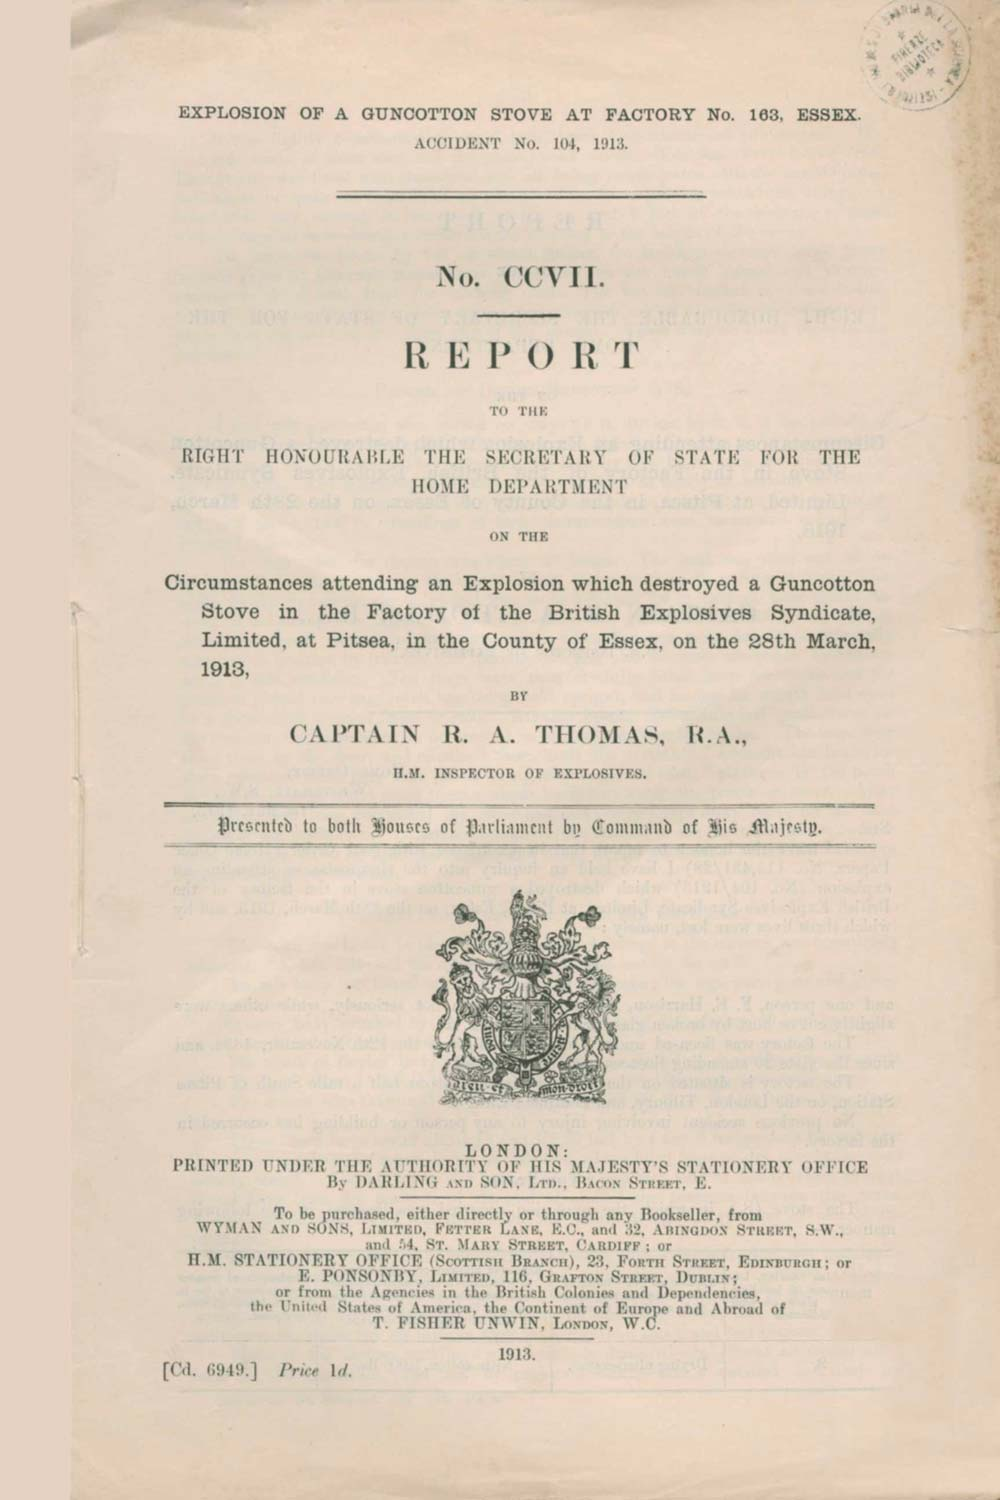 The cover of the government report into a fatal explosion in a guncotton stove at Pitsea.